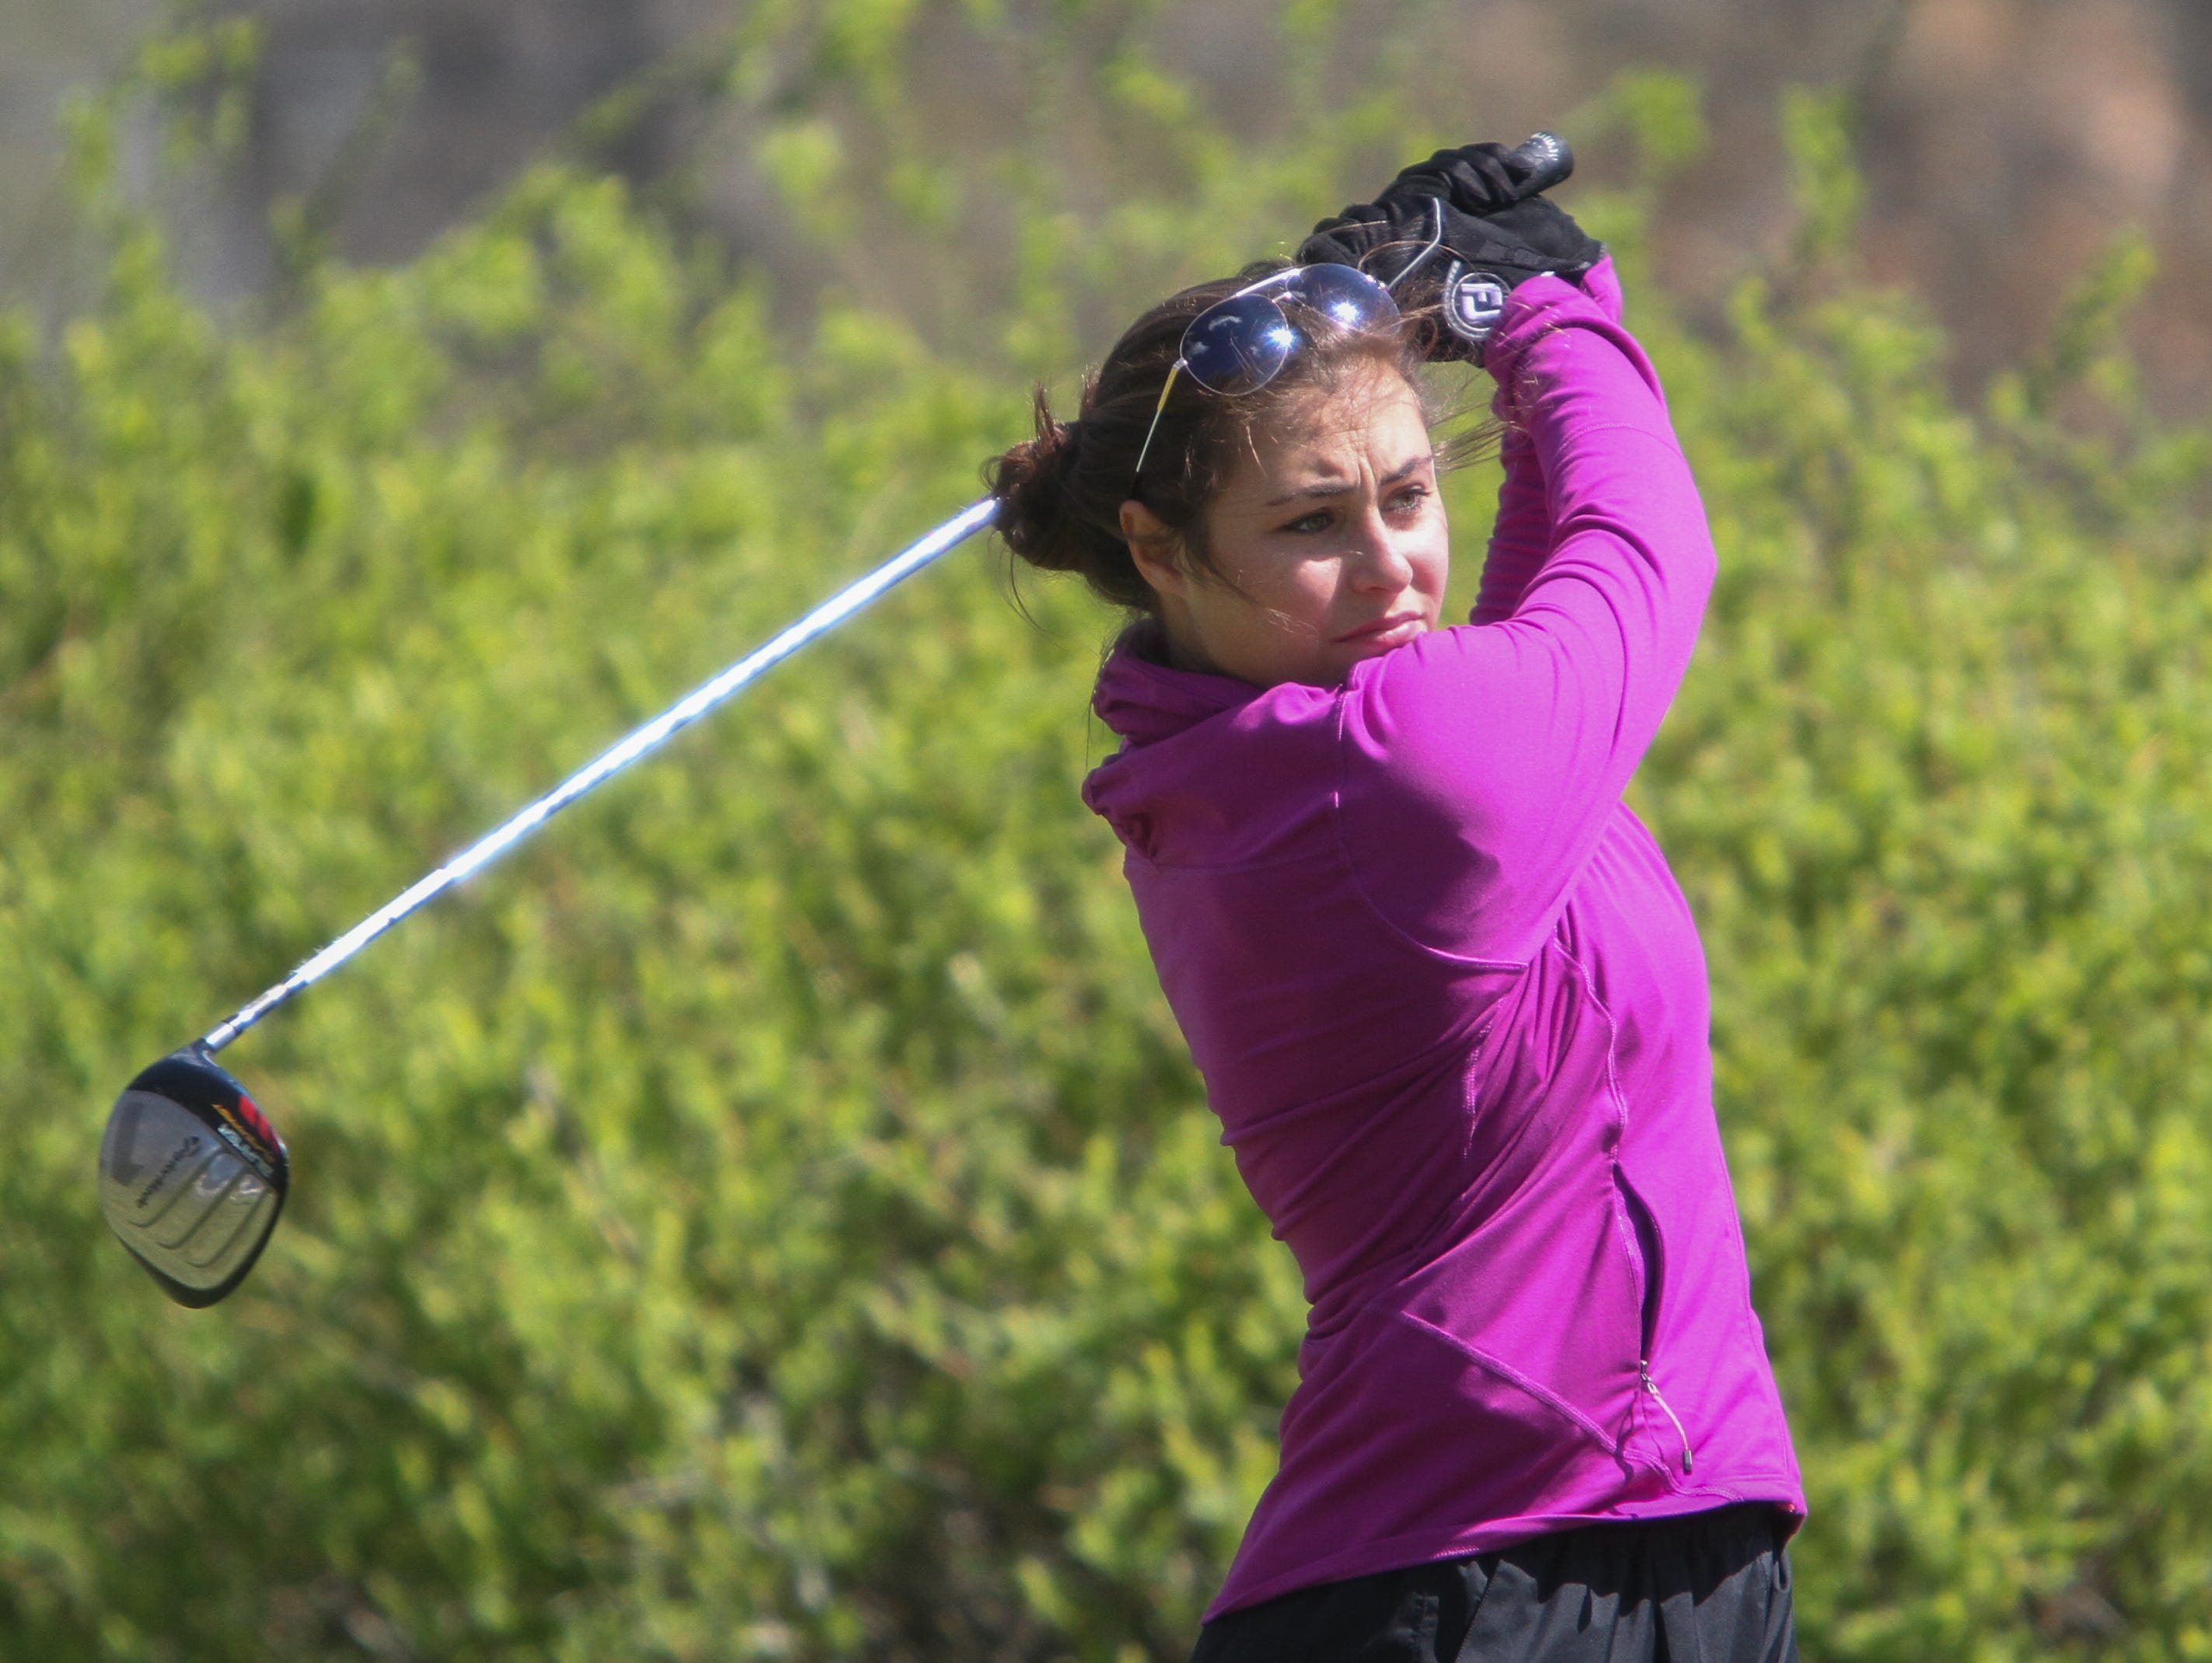 Pinelands' Danielle Elia hits a drive during the Shore Conference Tournament at Deal Golf & Country Club on Monday.